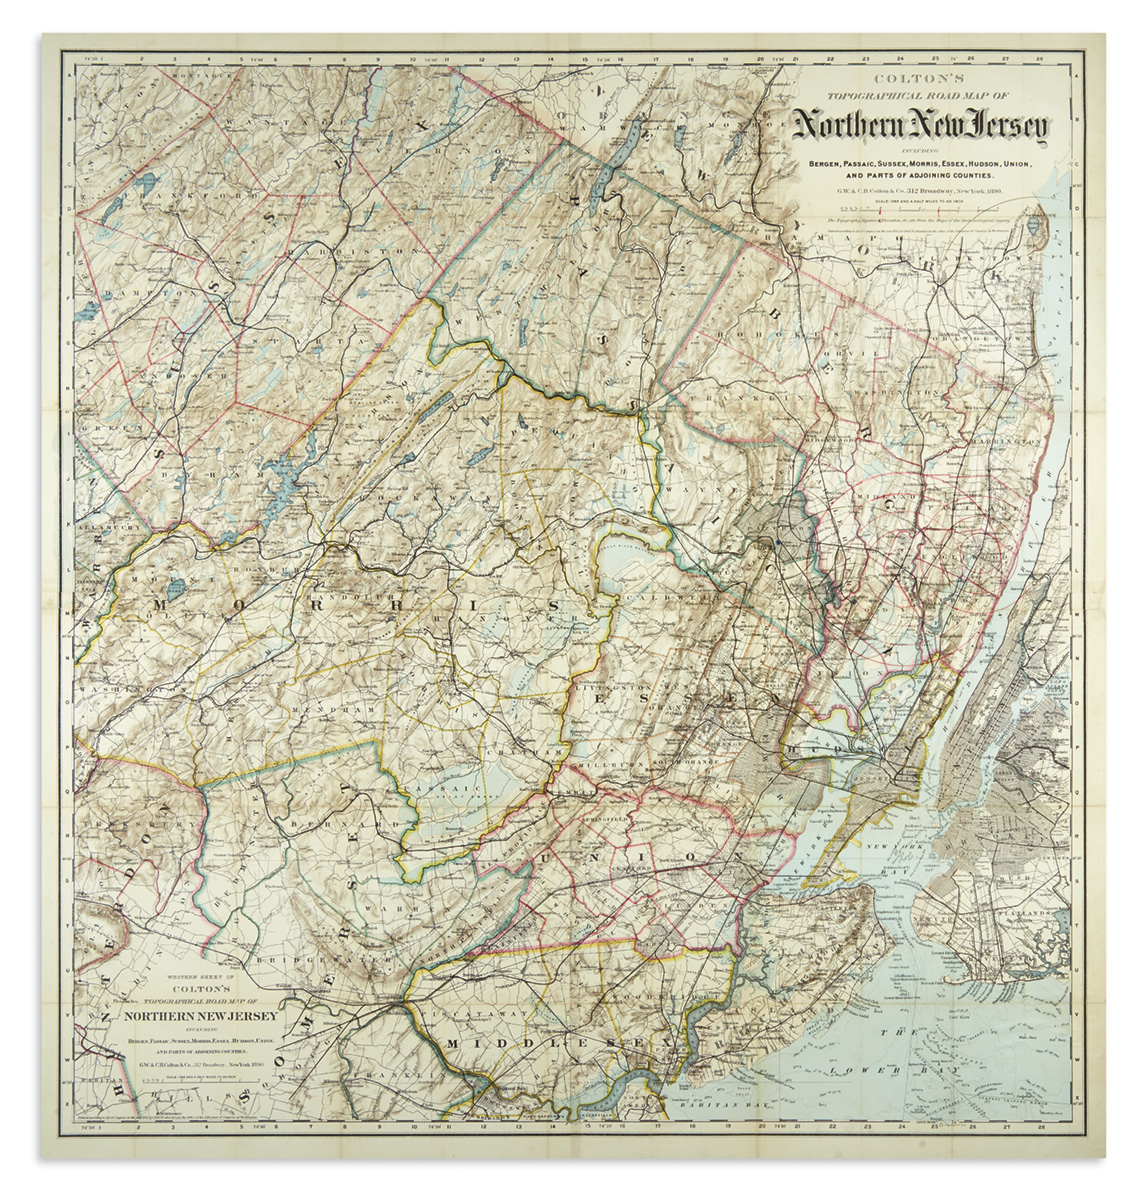 COLTON, G.W. & C.B. Coltons Topographical Road Map of Northern New Jersey.